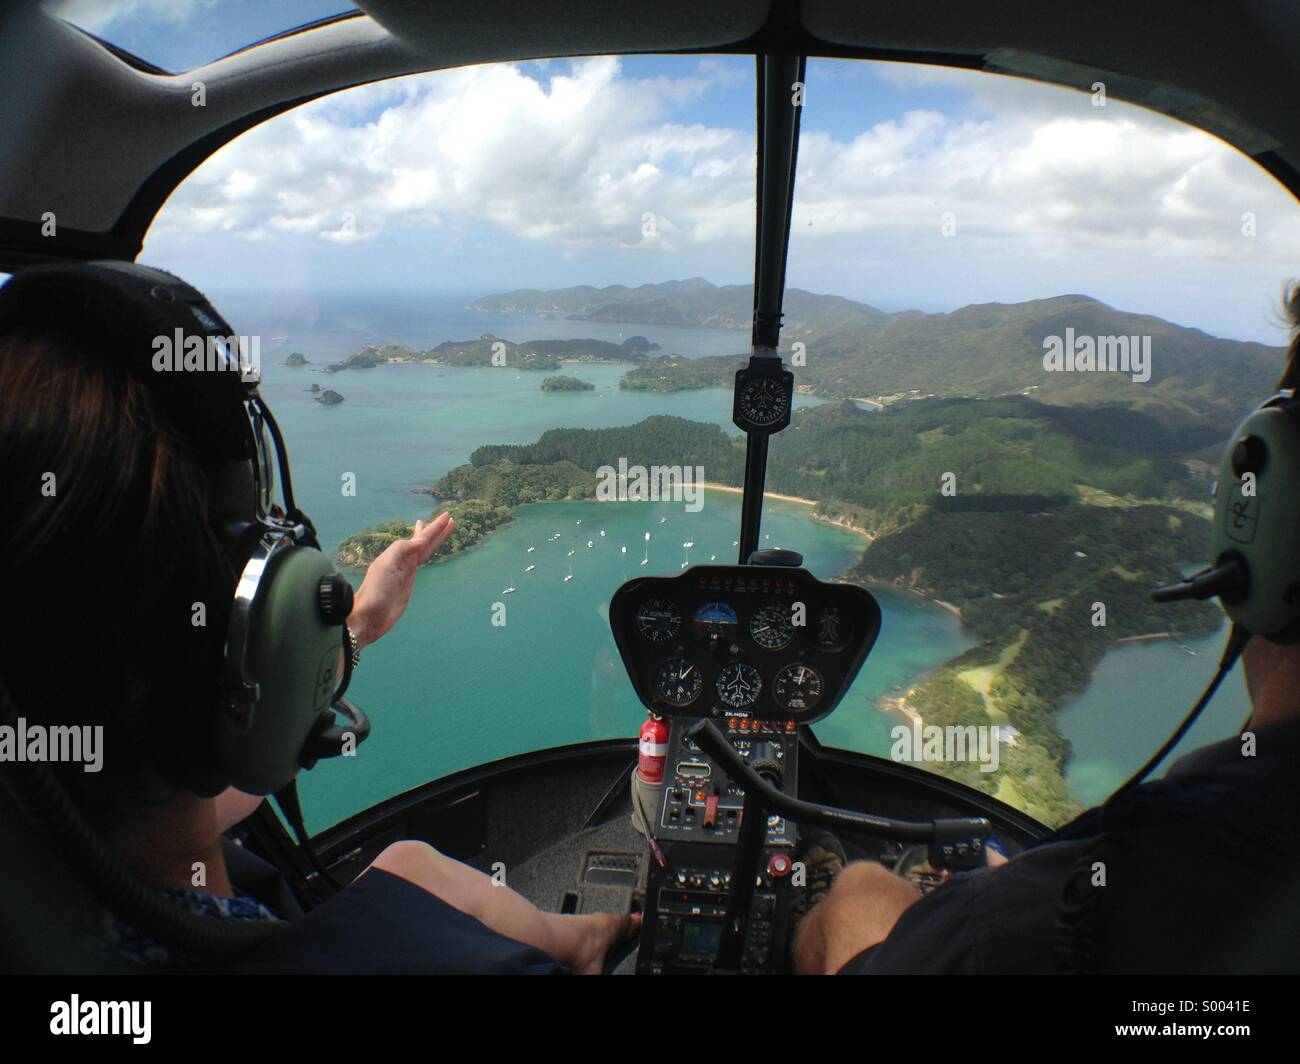 An aerial view of the Bay Of islands in New Zealand's North Island. January 2014 - Stock Image